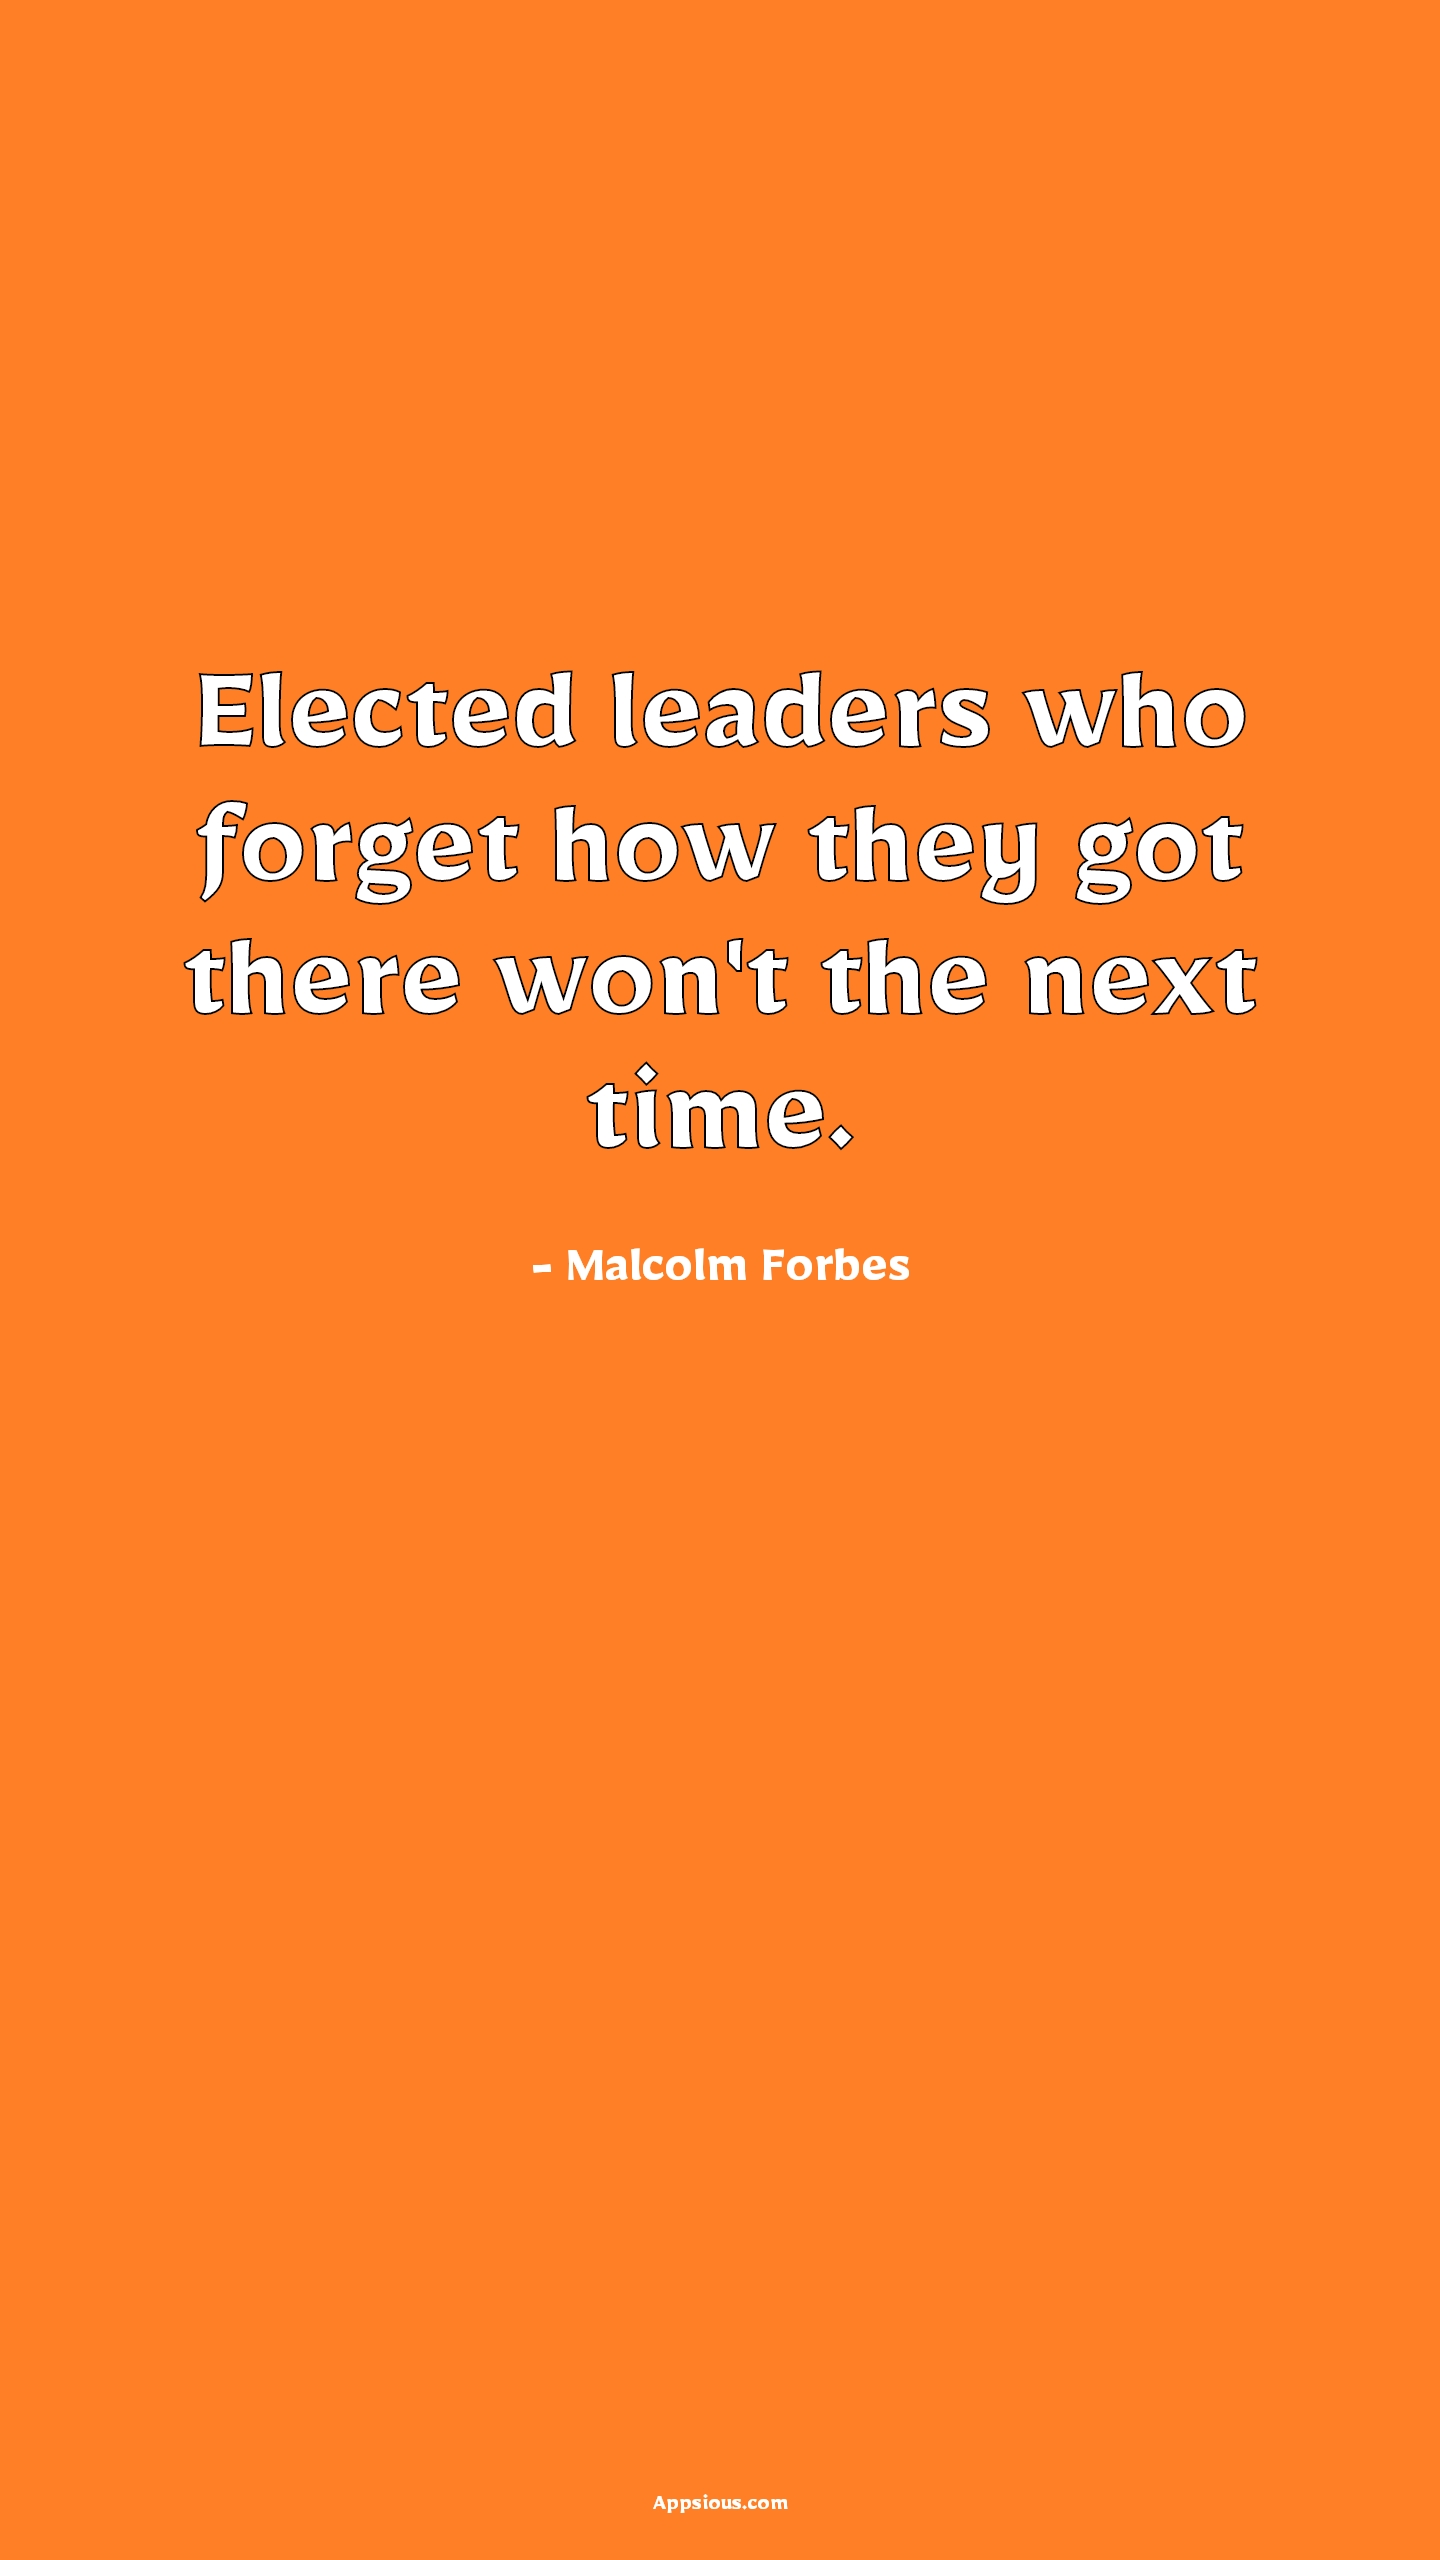 Elected leaders who forget how they got there won't the next time.